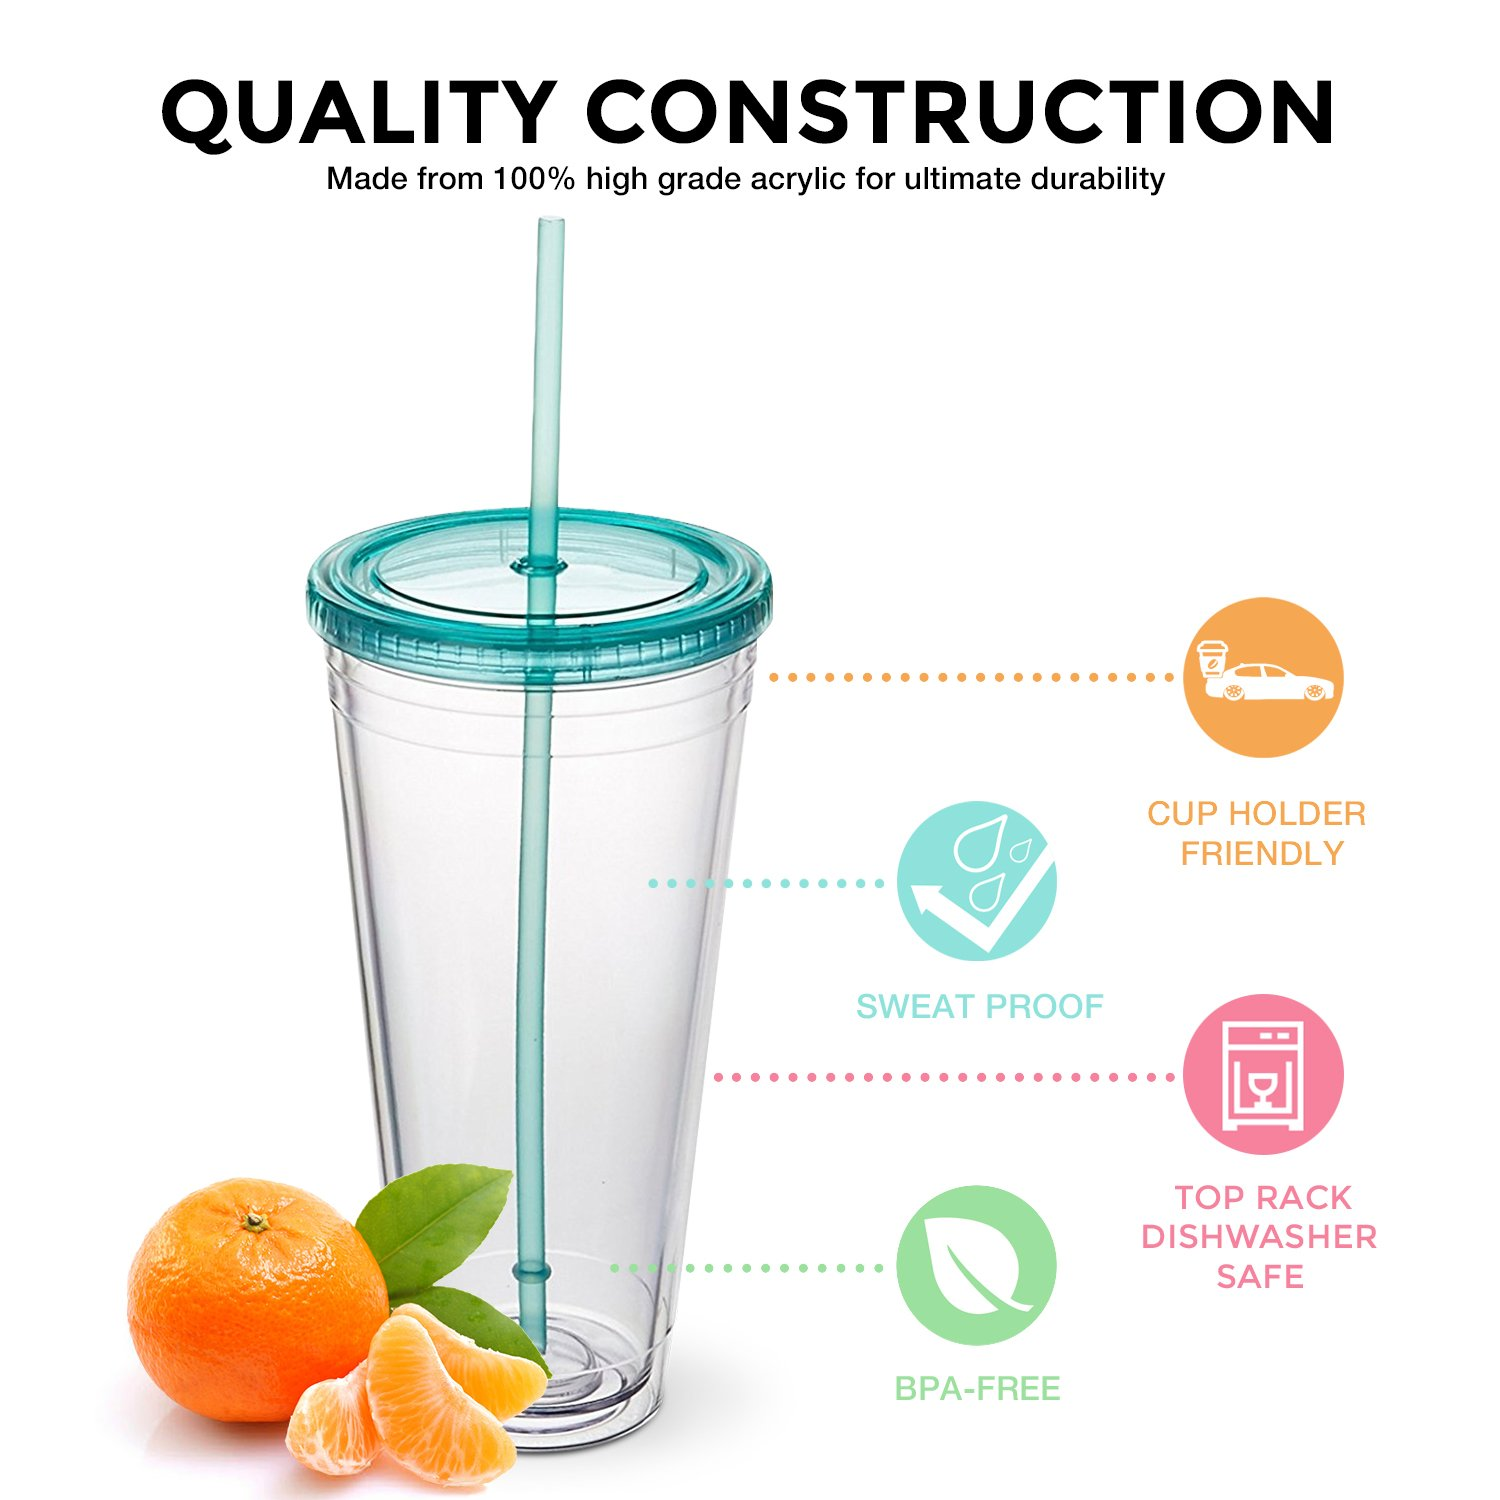 Maars Insulated Travel Tumblers 32 oz. | Double Wall Acrylic | 3 Pack by Maars® Drinkware (Image #3)